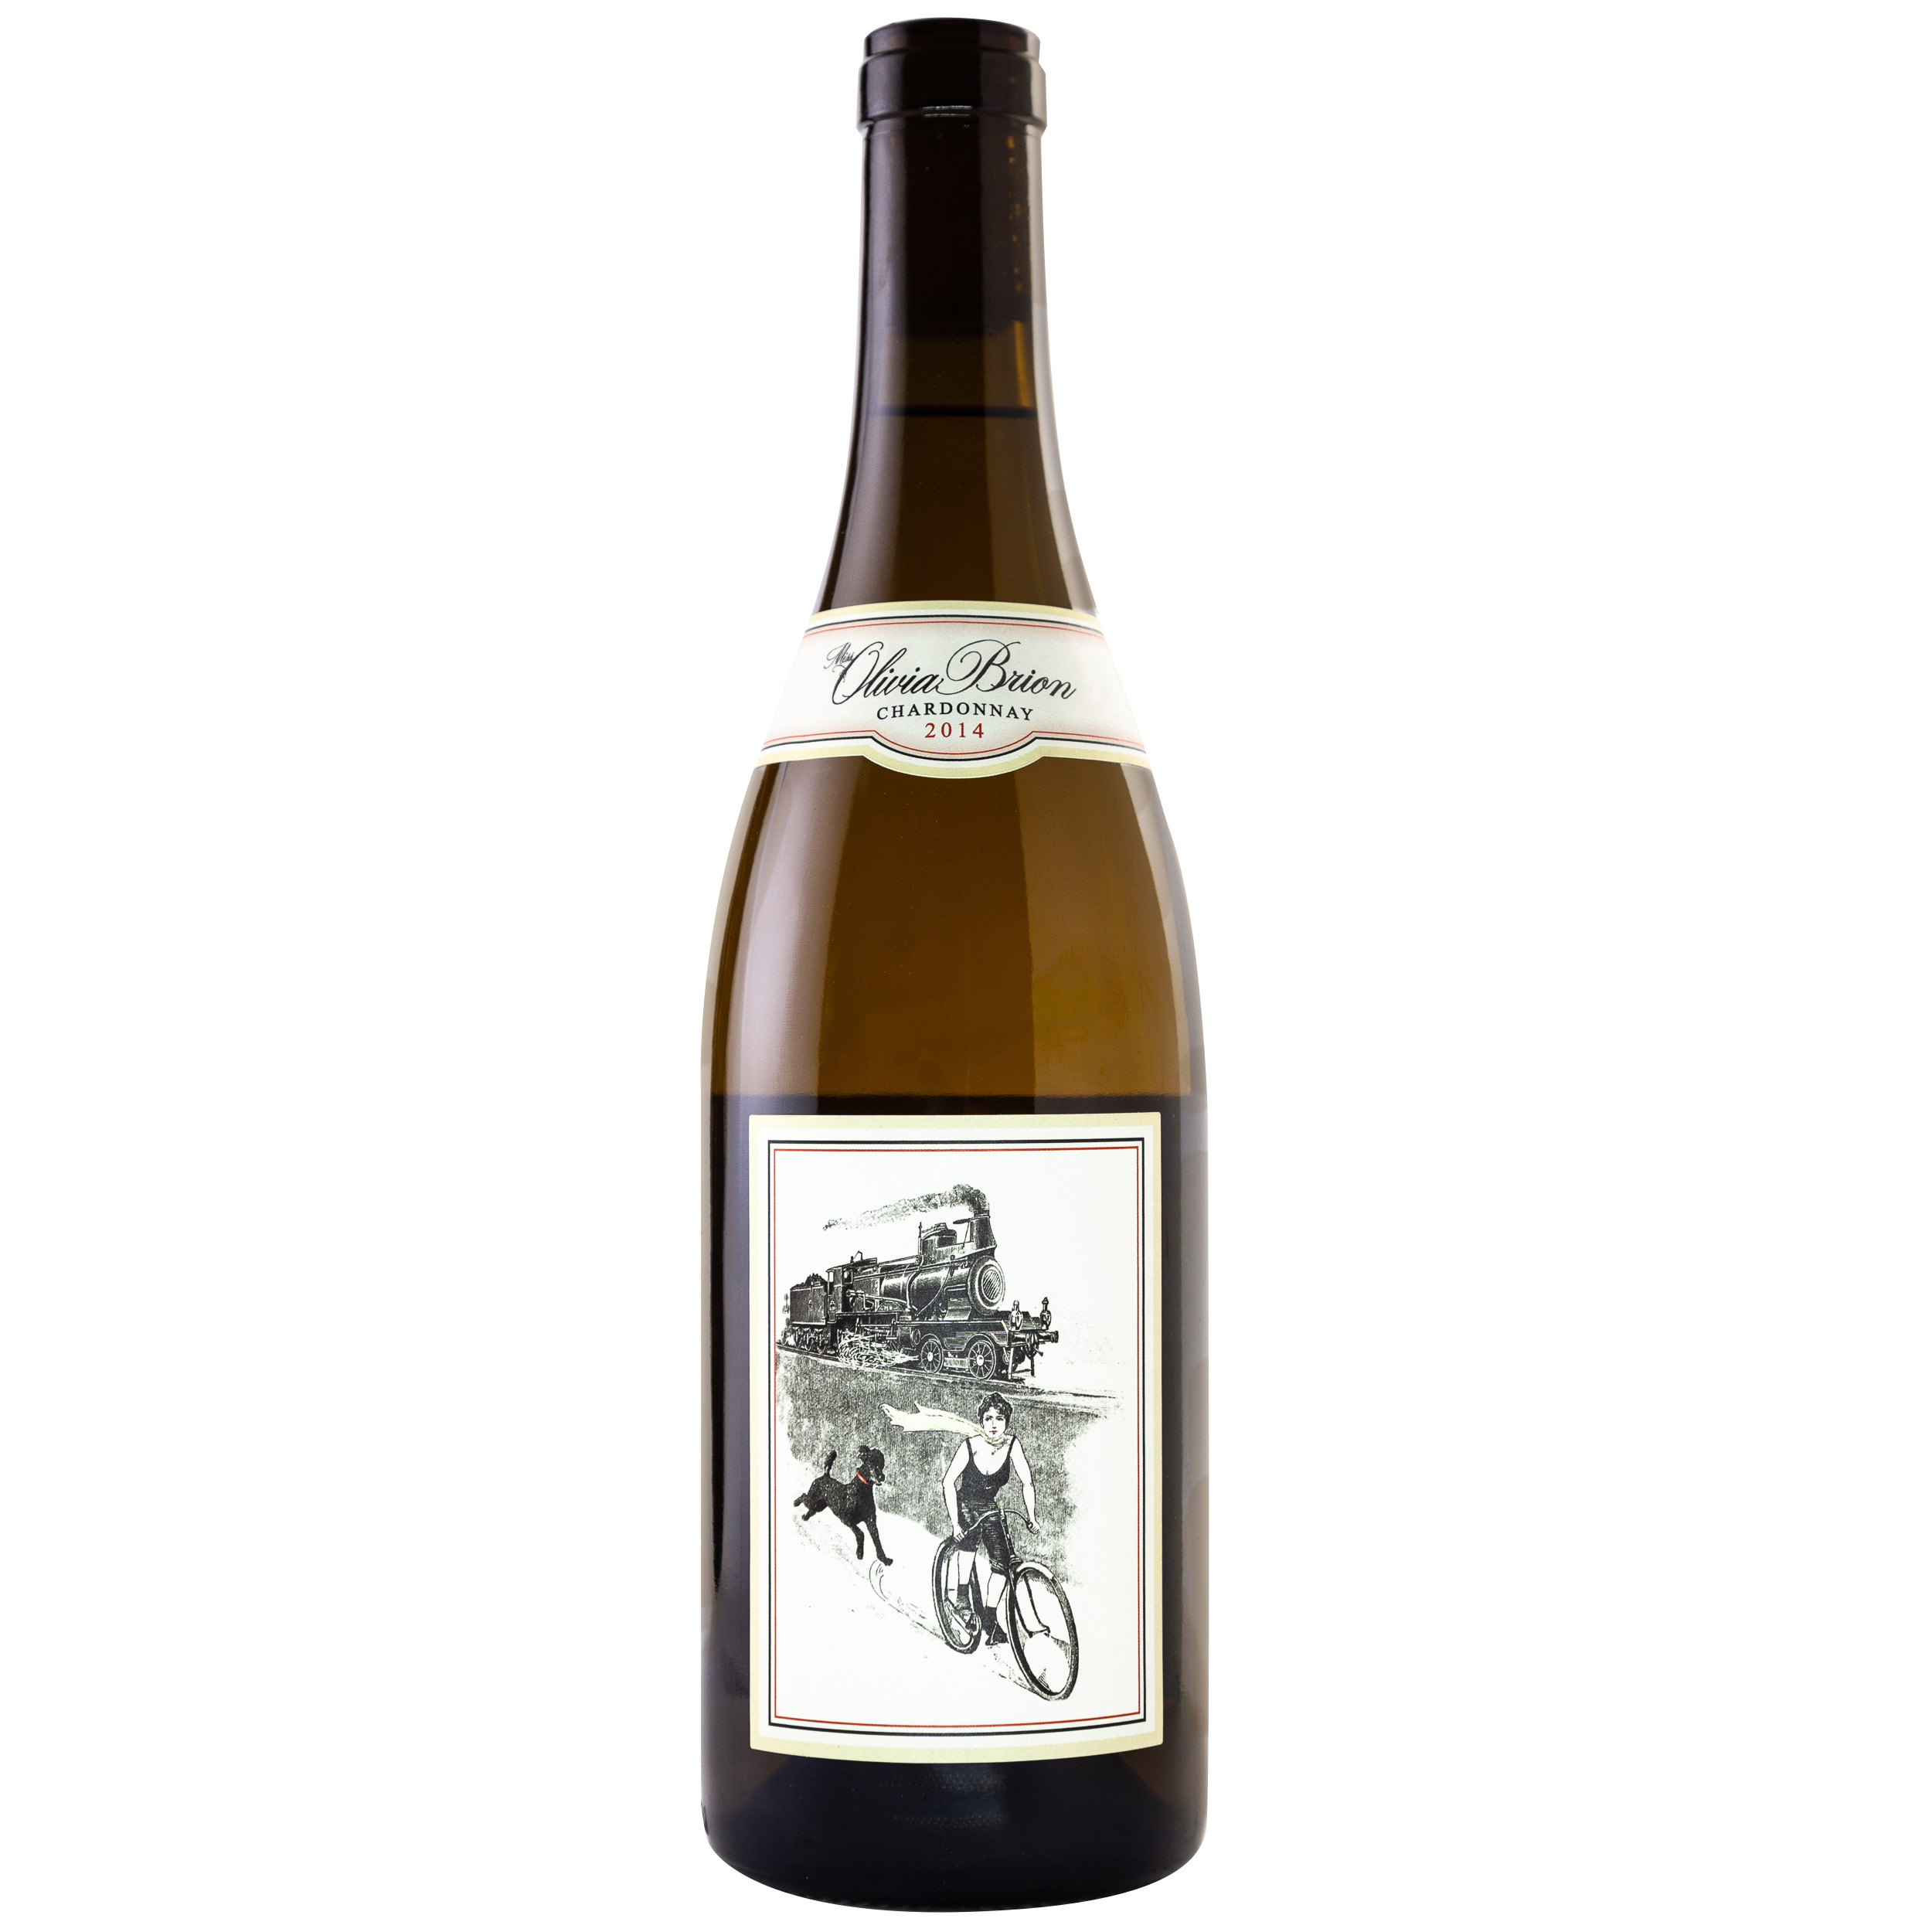 - 100% Chardonnay- Heron Lake Vineyard, Wild Horse Valley AVA- 13.8% Alcohol- 520 Cases Produced - This wine has fruit notes of white peaches and honeydew melon, as well as layered flavors of creme brûlée and baked apple. The structure is bright on the mid palate and rich in the finish.